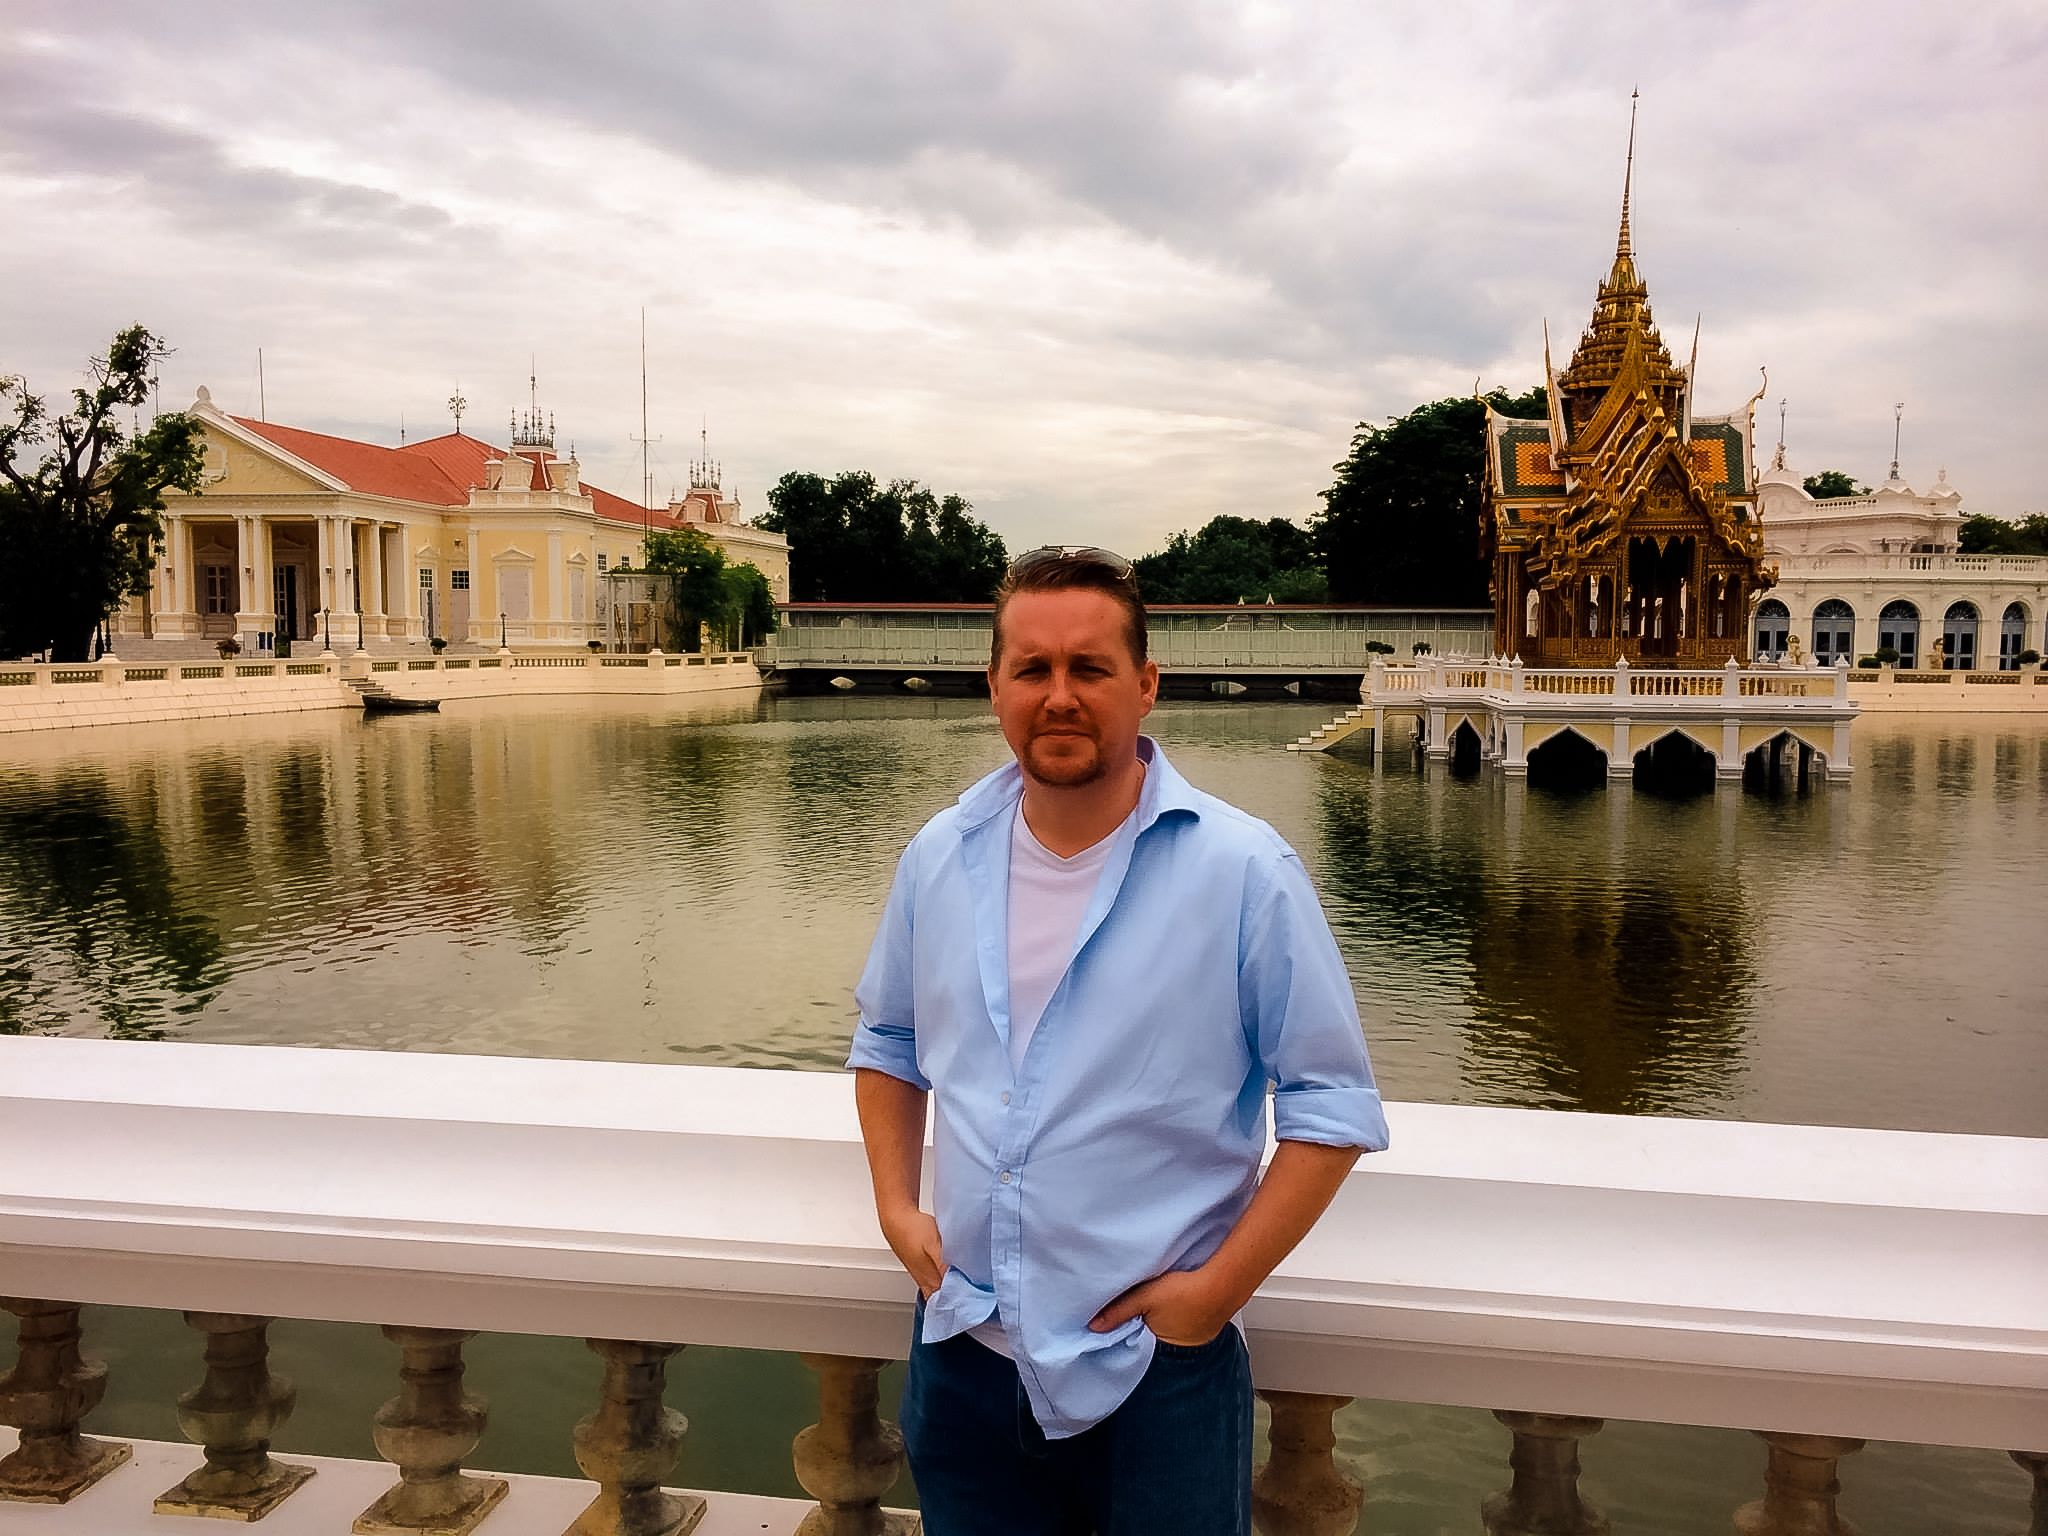 Photography Liverpool owner Matthew Fitzpatrick in Thailand